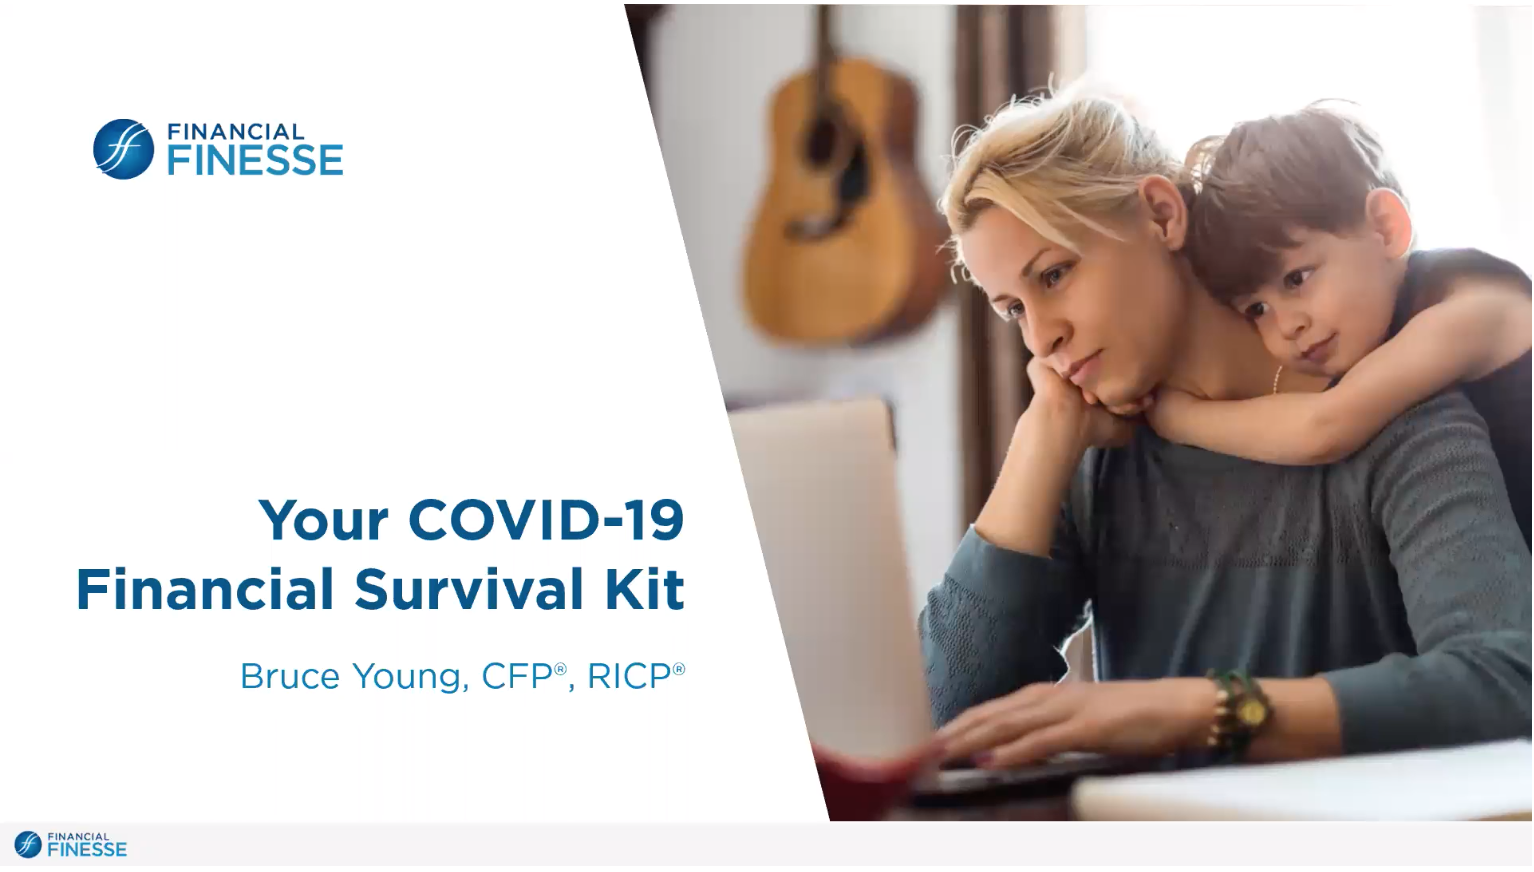 VIDEO: Your COVID-19 Financial Survival Kit